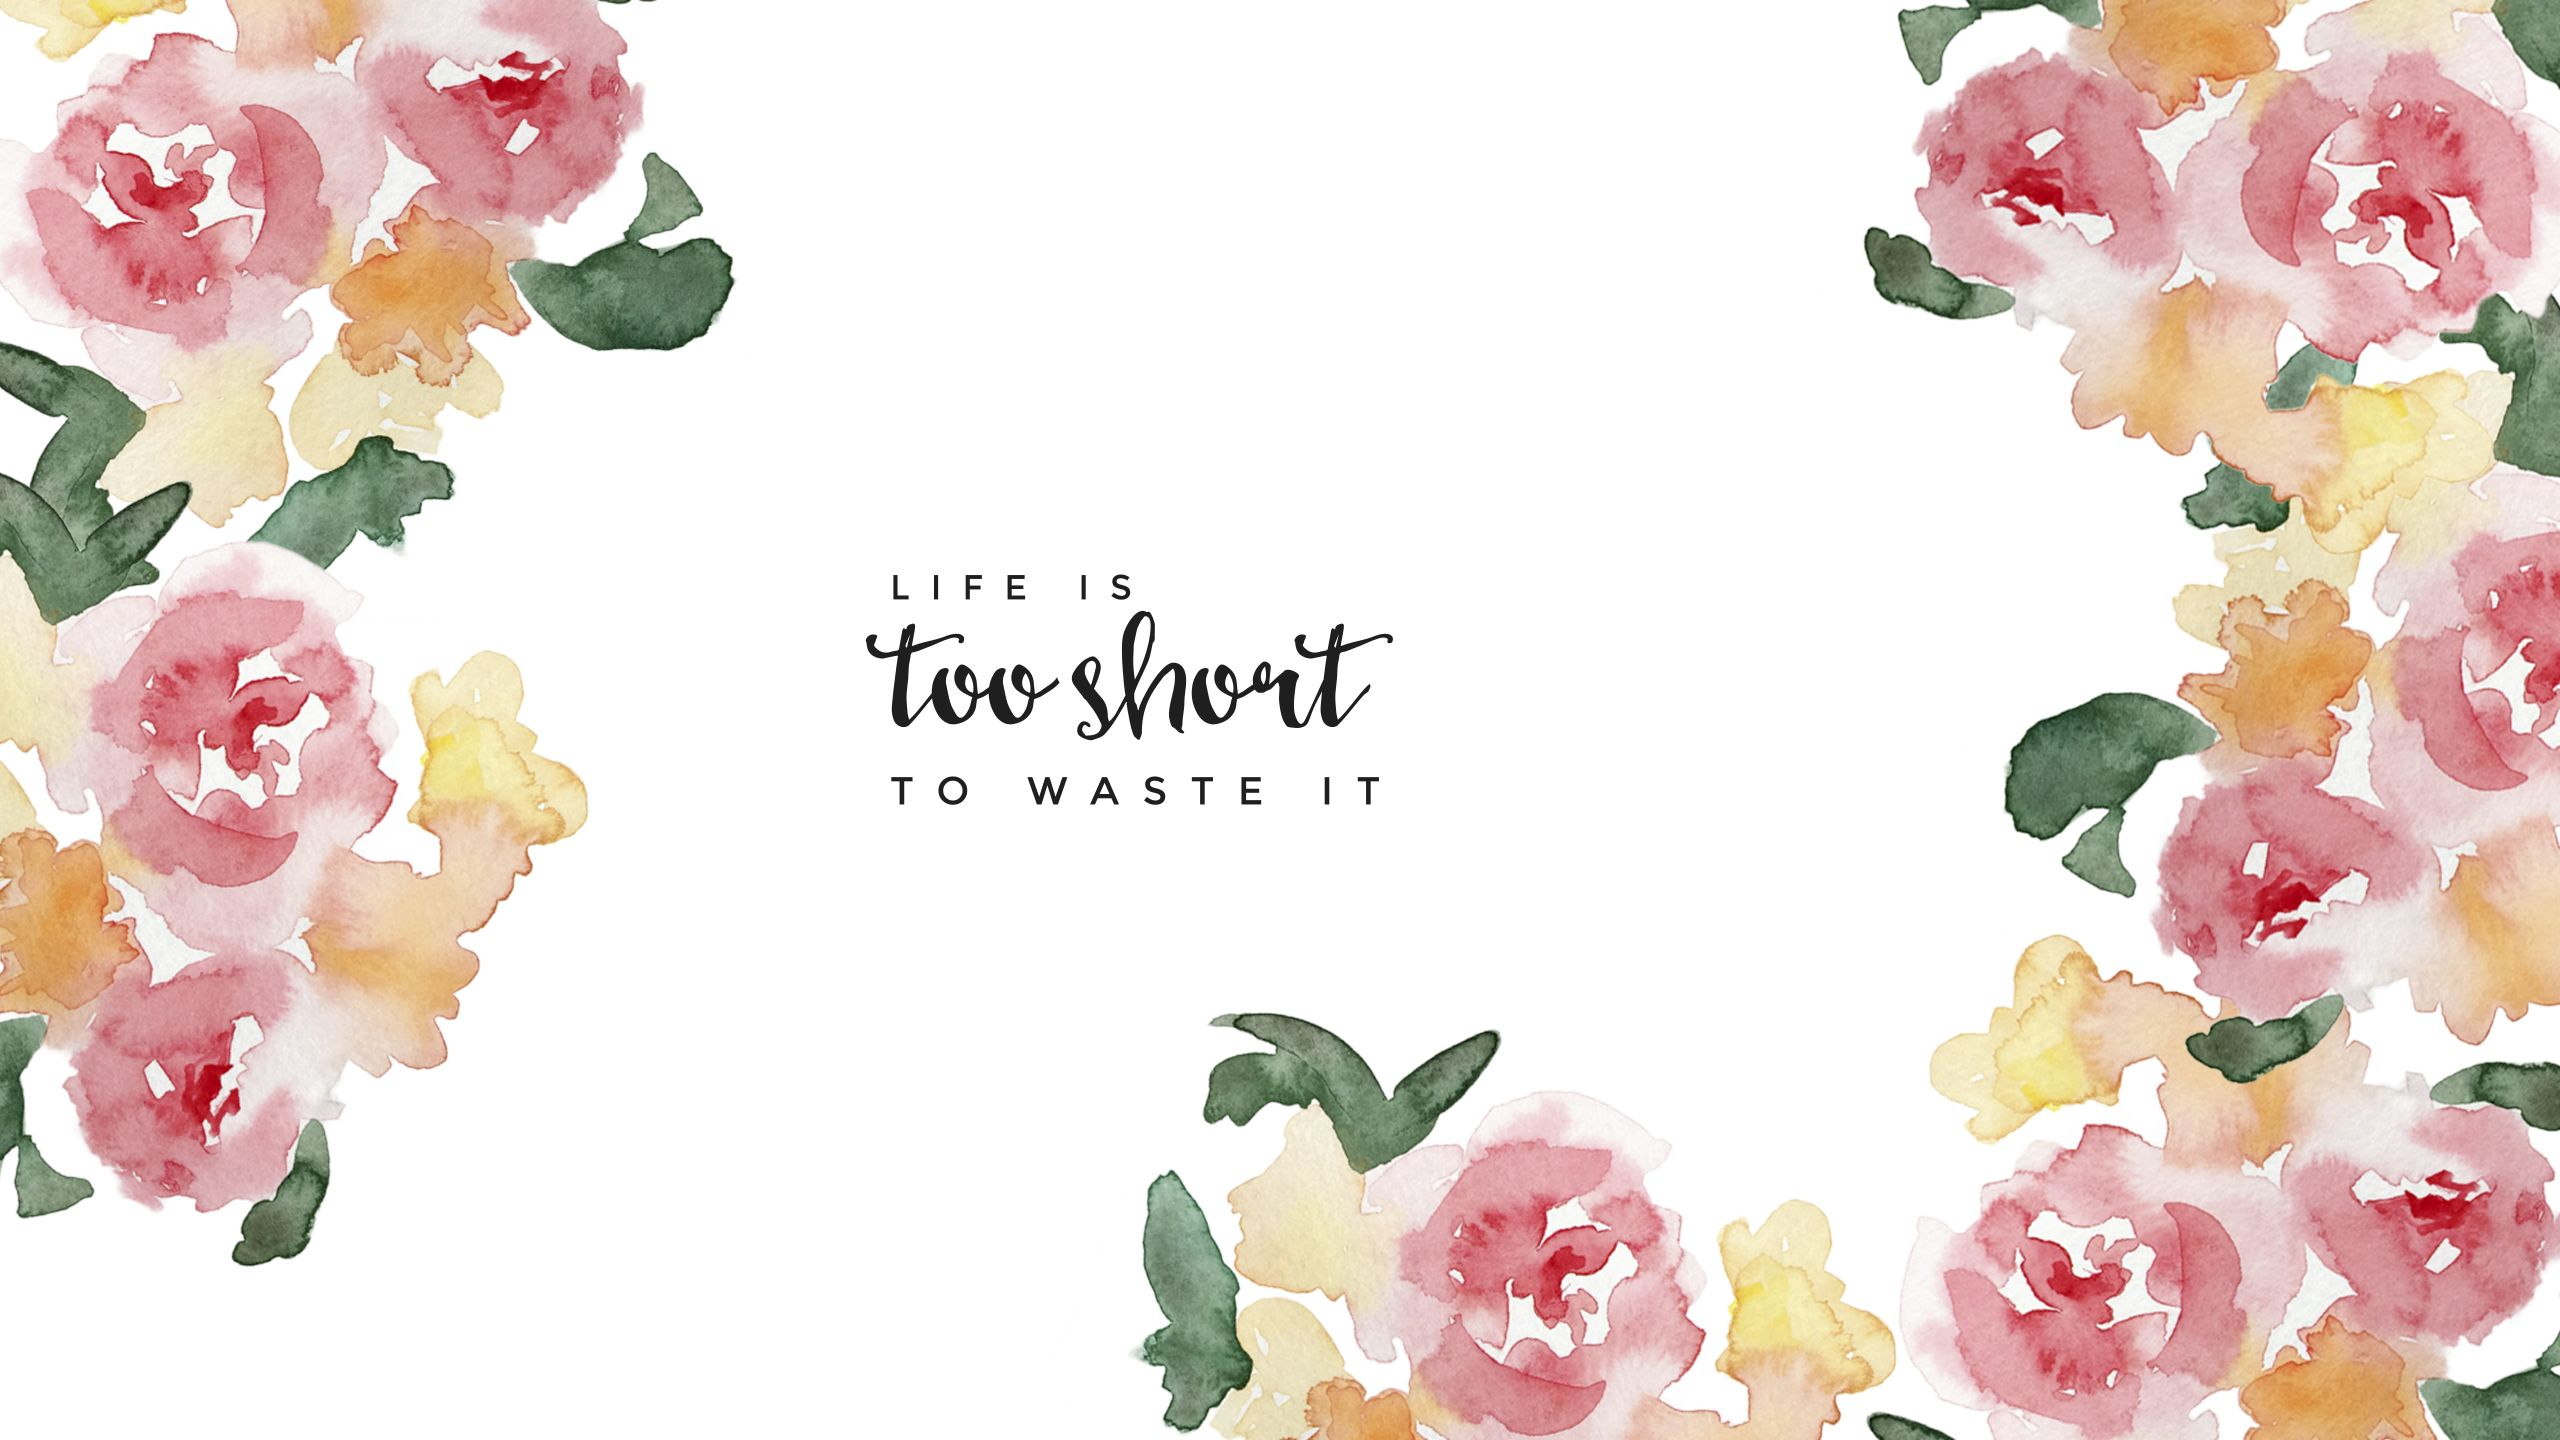 free imac wallpaper life is too short to waste it #quotes